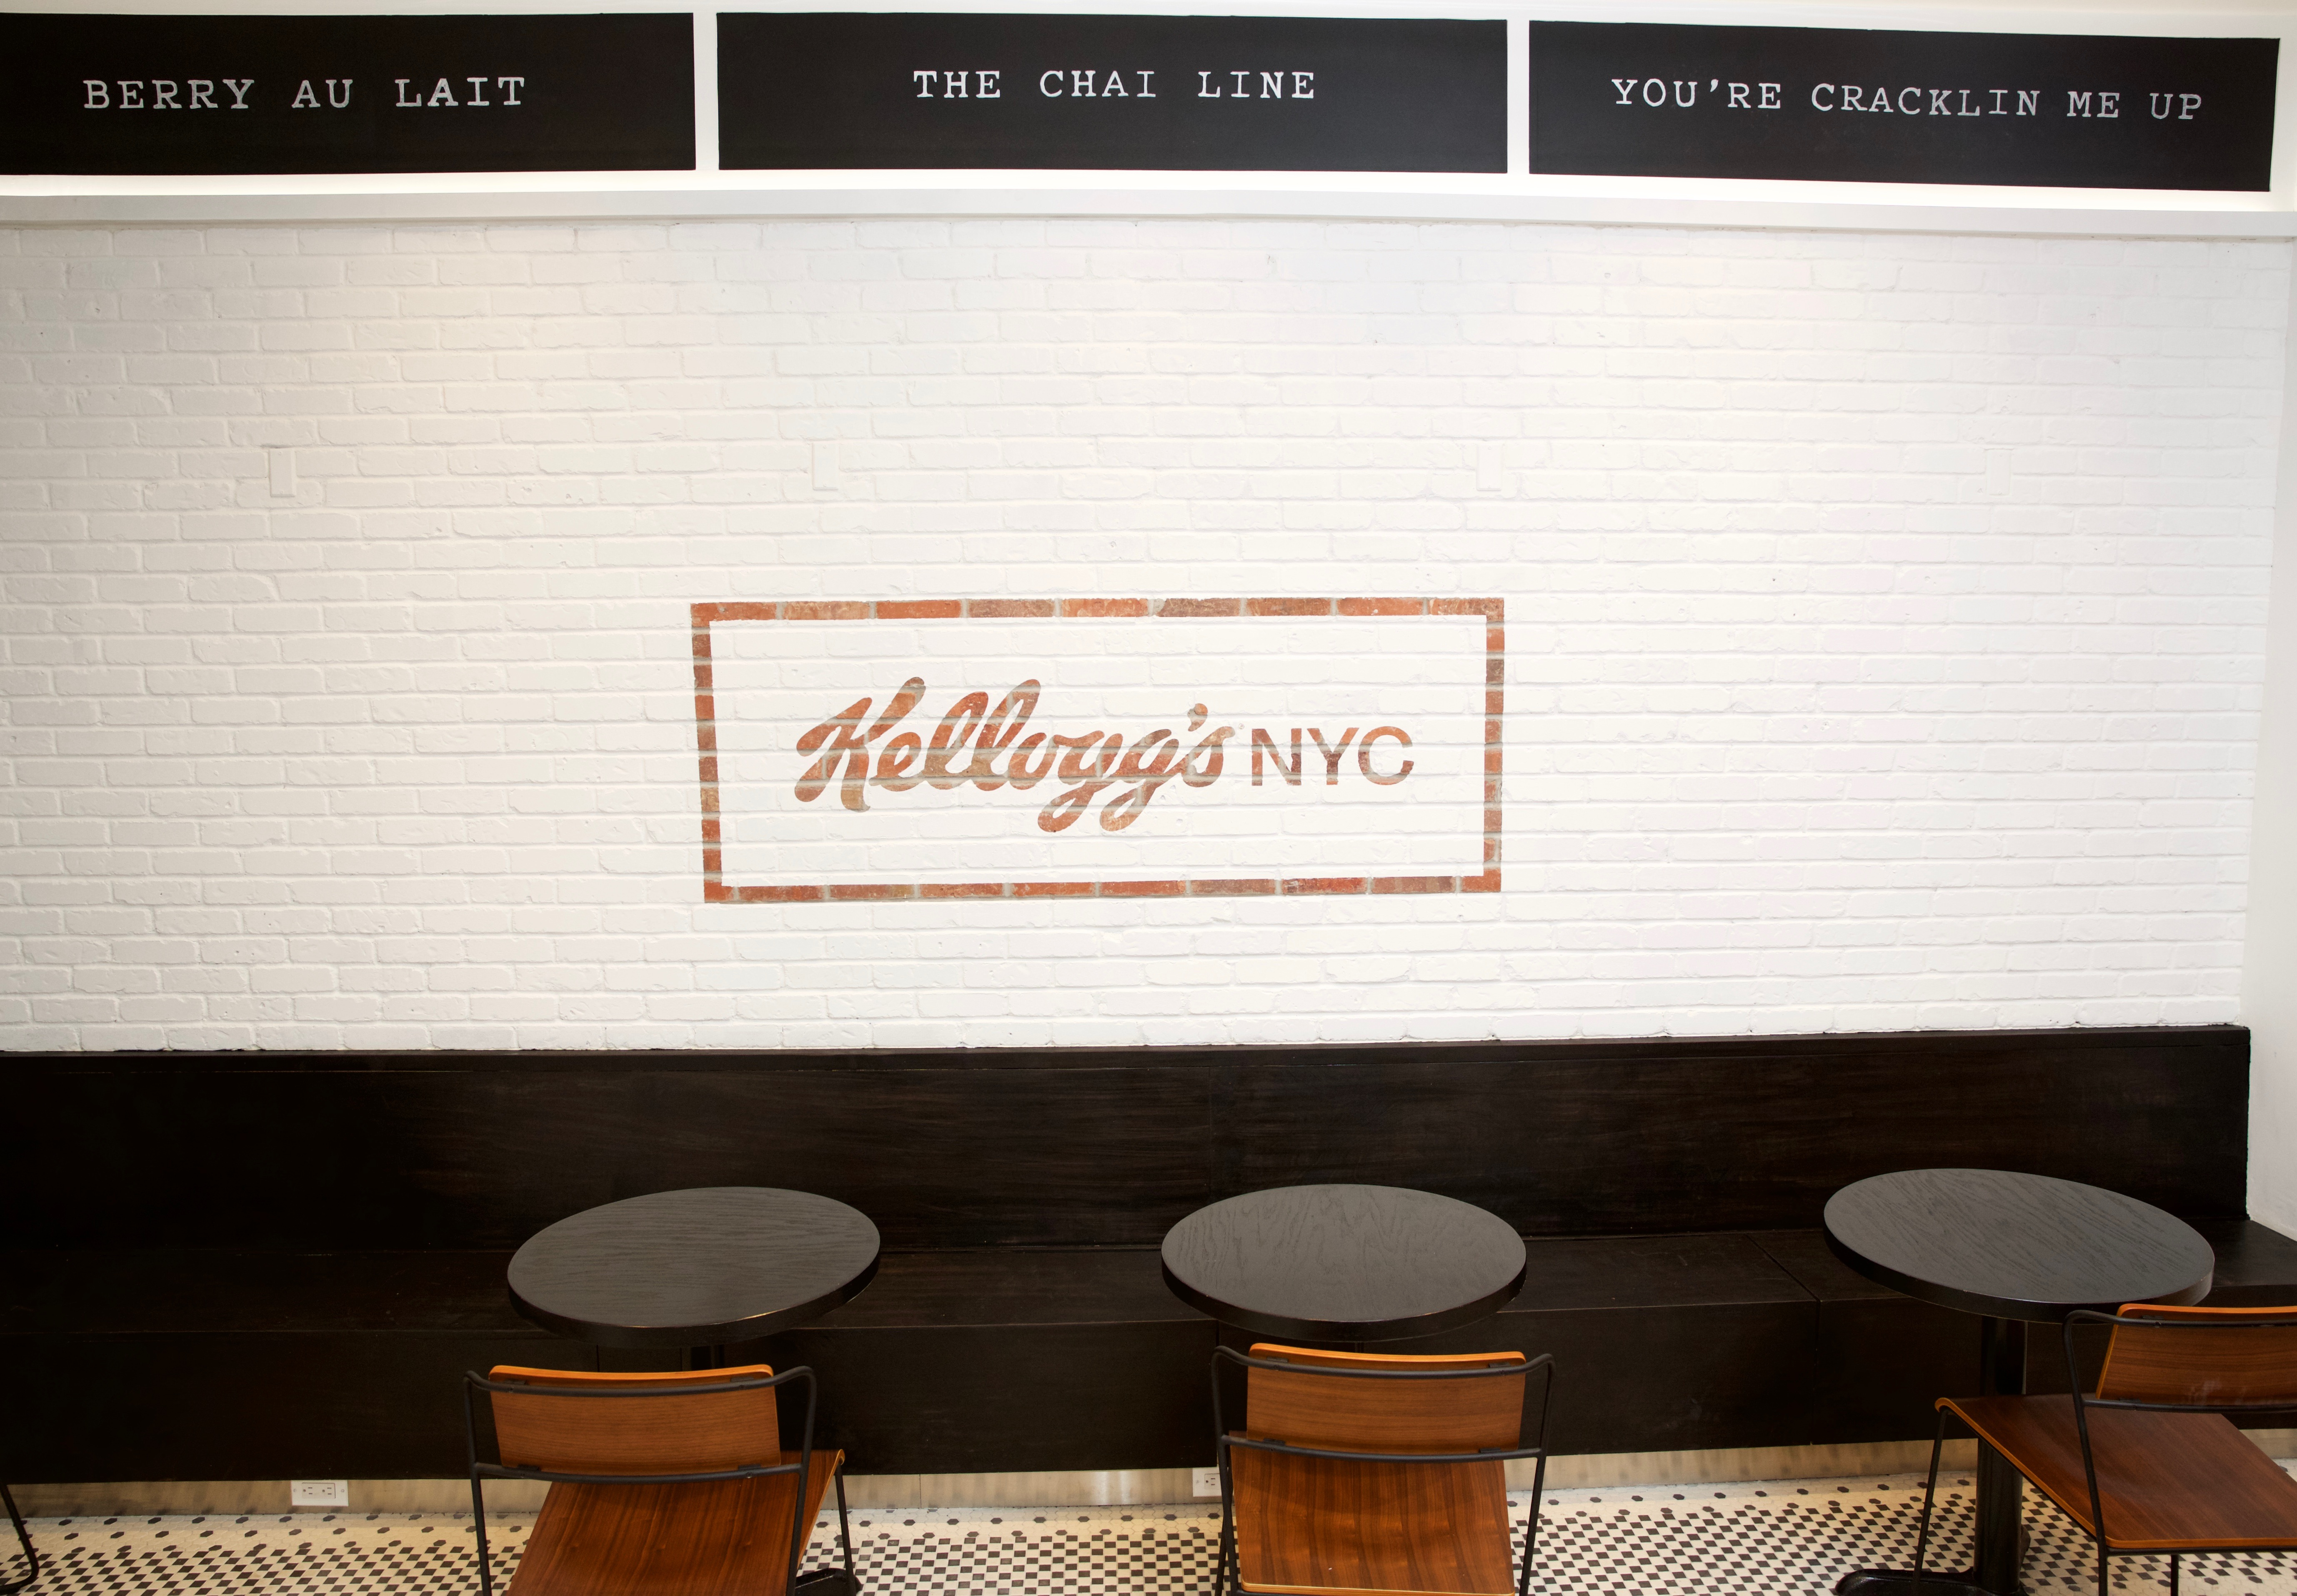 Kellogg's NYC Wall